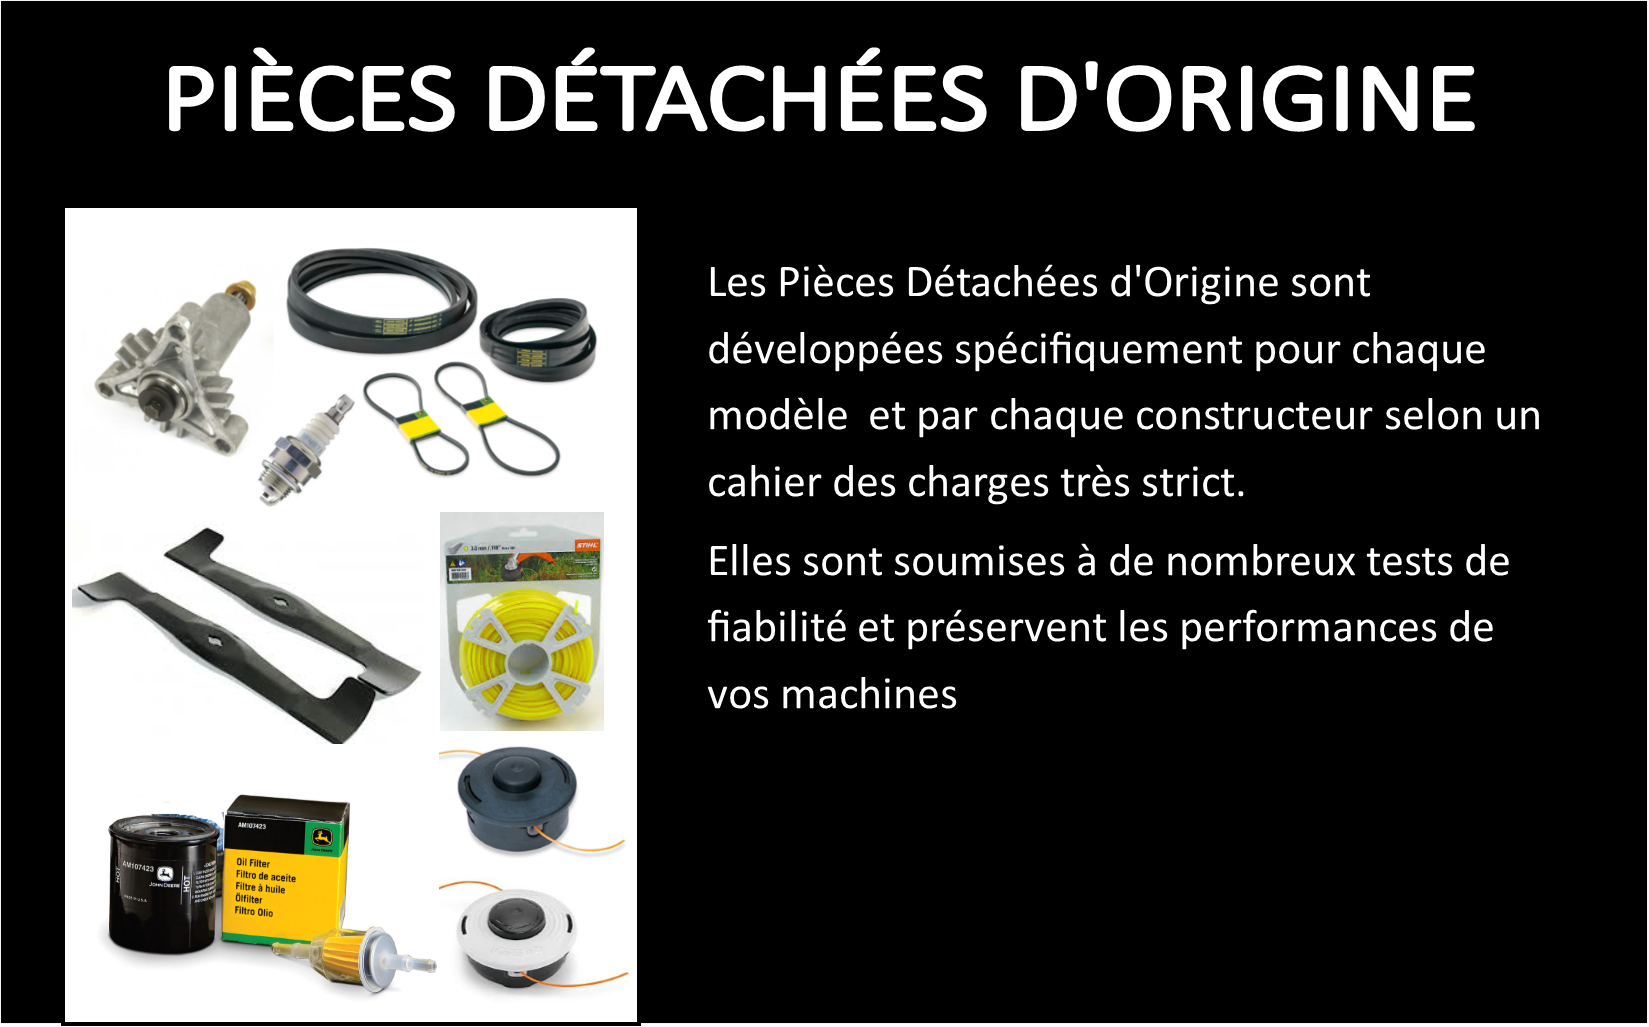 PIECES DETACHEES ORIGINE